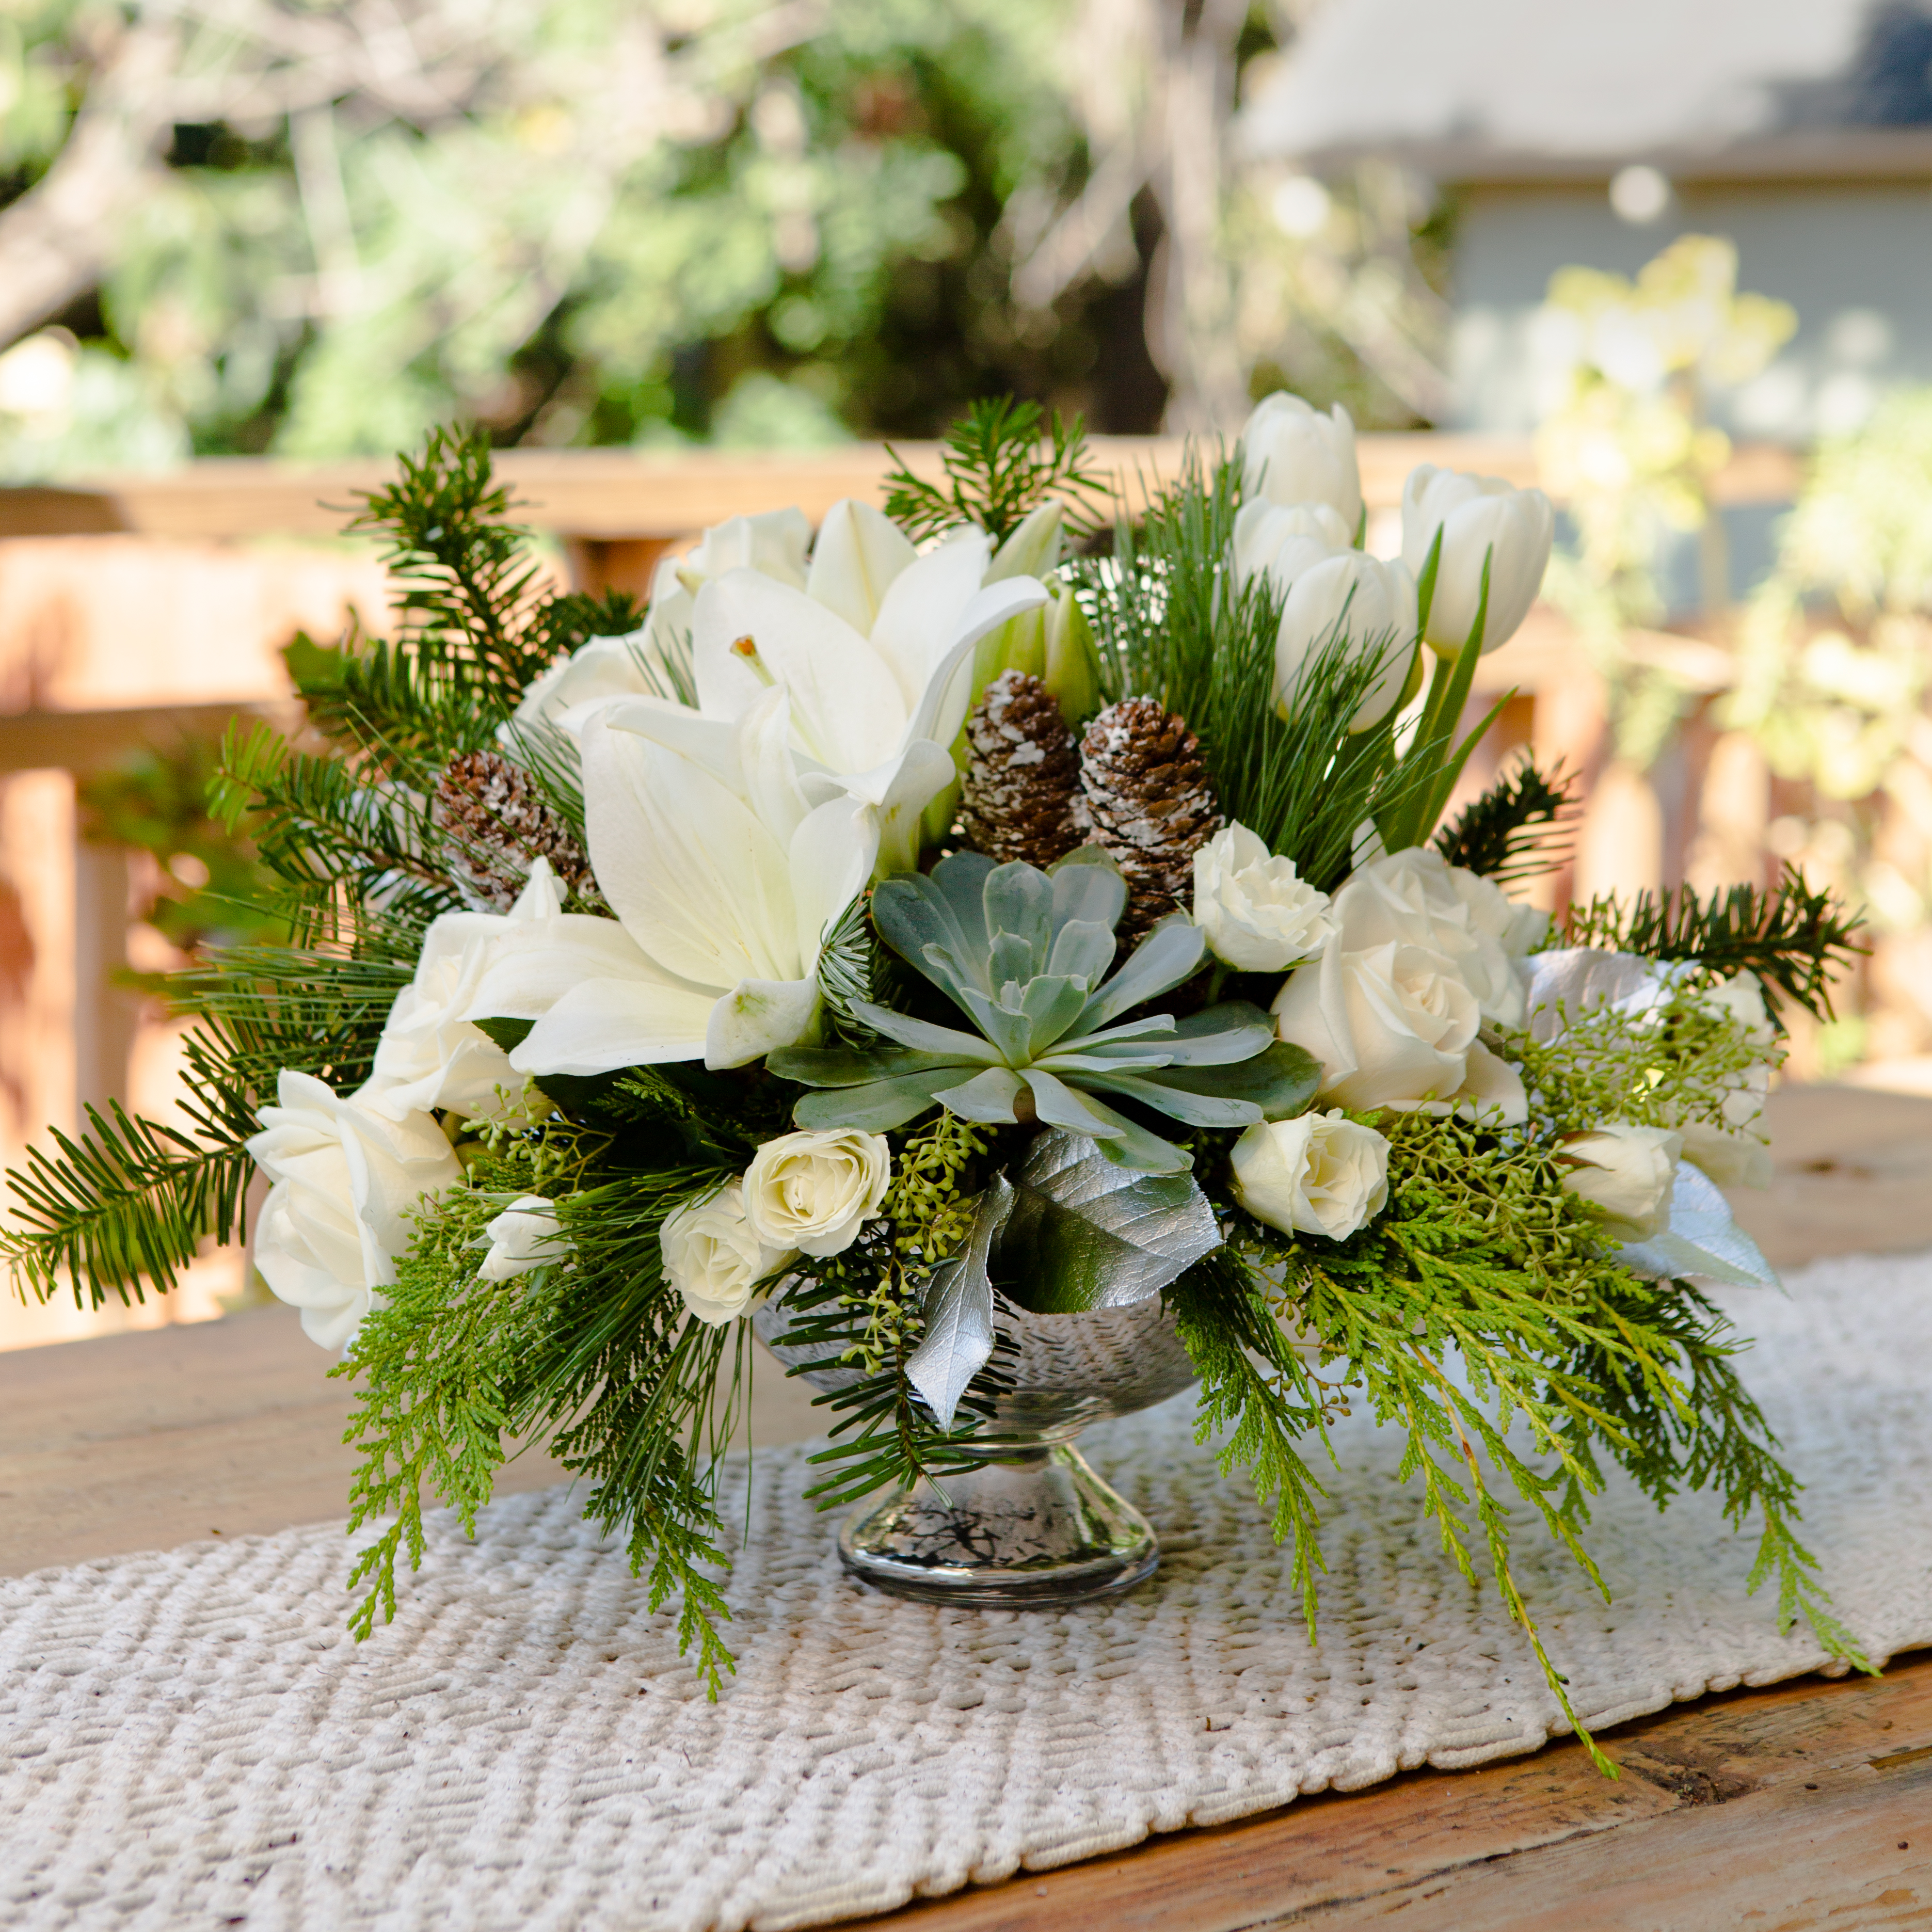 White lilies, white roses, succulents, and greenery fill a fill centerpiece and are accented with pinecones